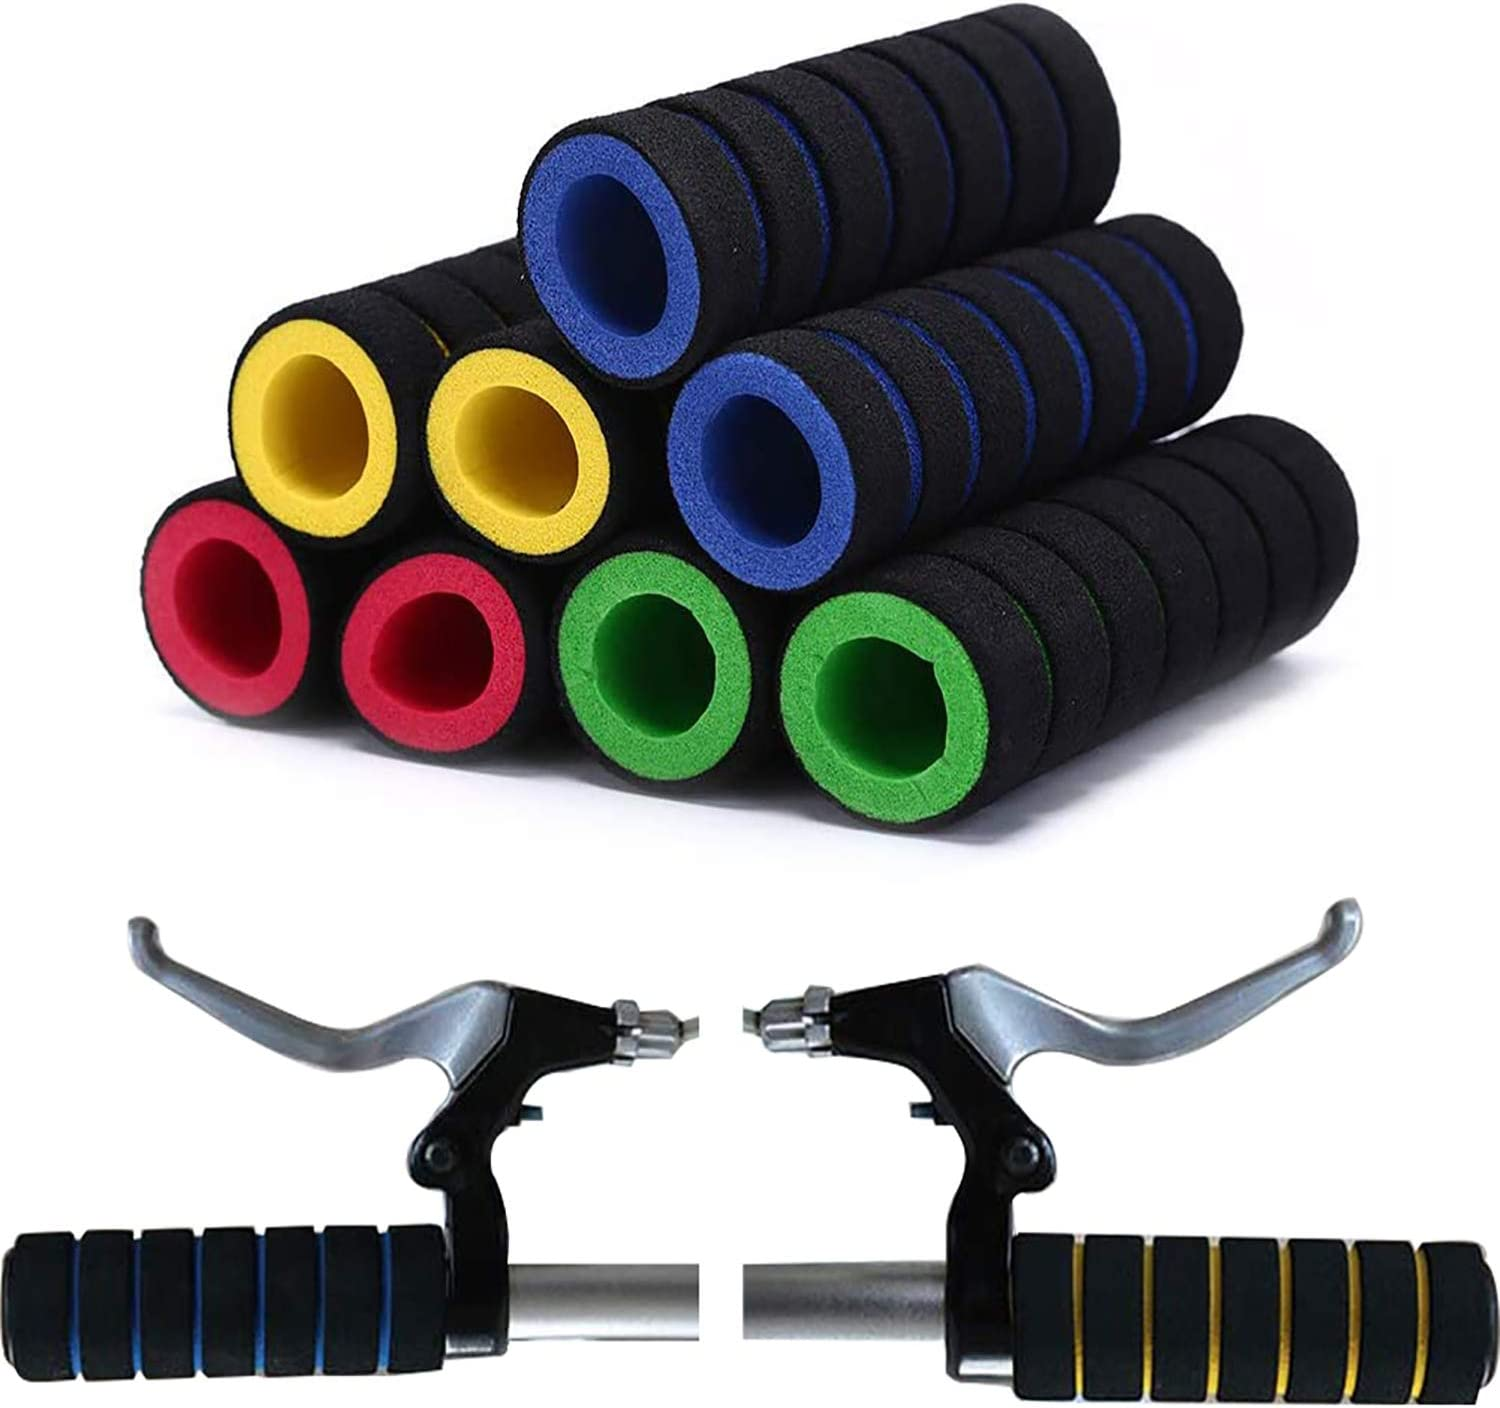 Bicycle Bike Soft Foam Sponge Extra-Long Handlebar Grip//Cover Blue